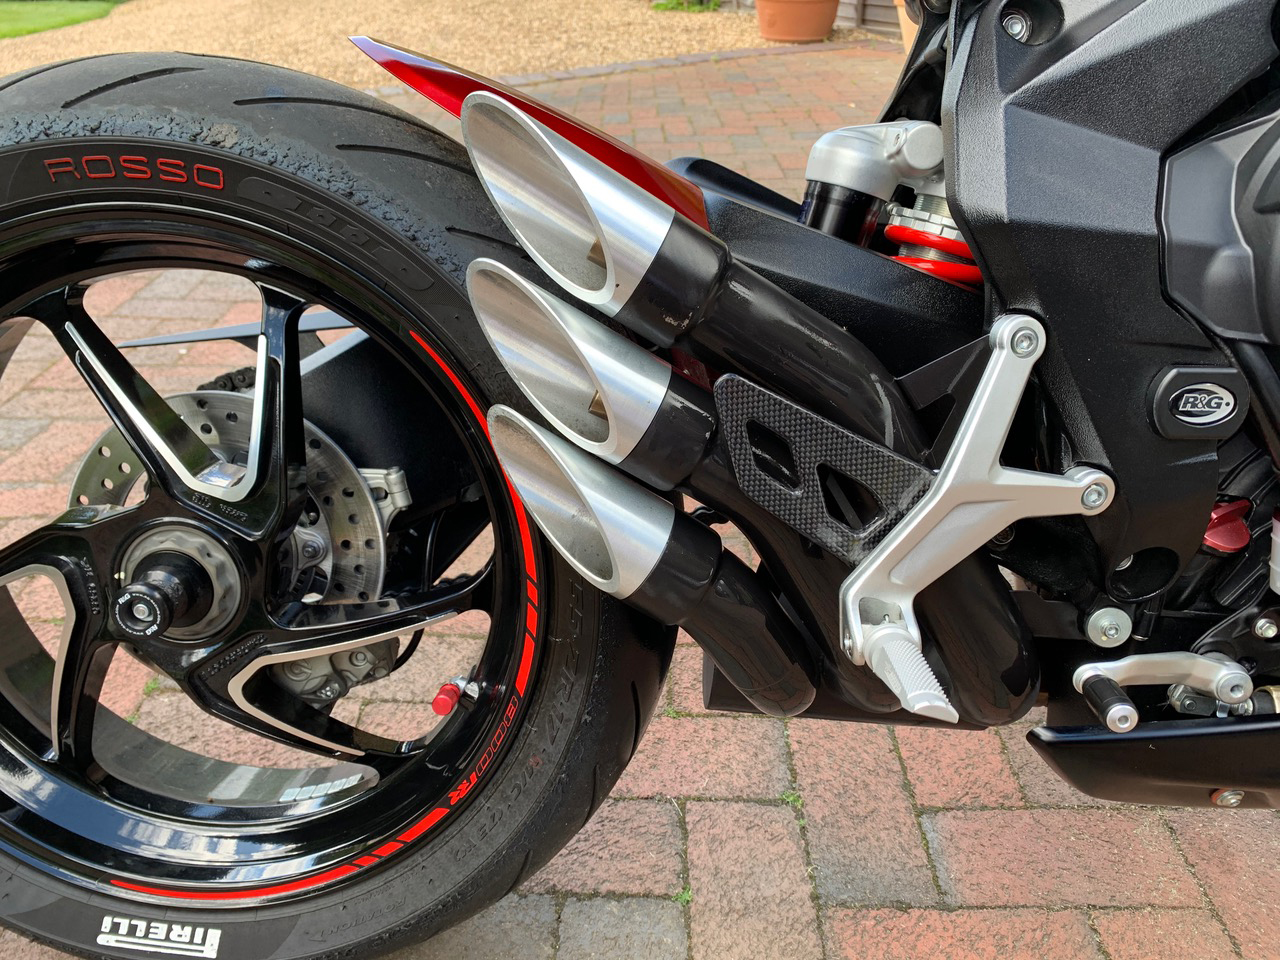 mv-agusta-dragster-carbon-fibre-heel-guard-3.jpg